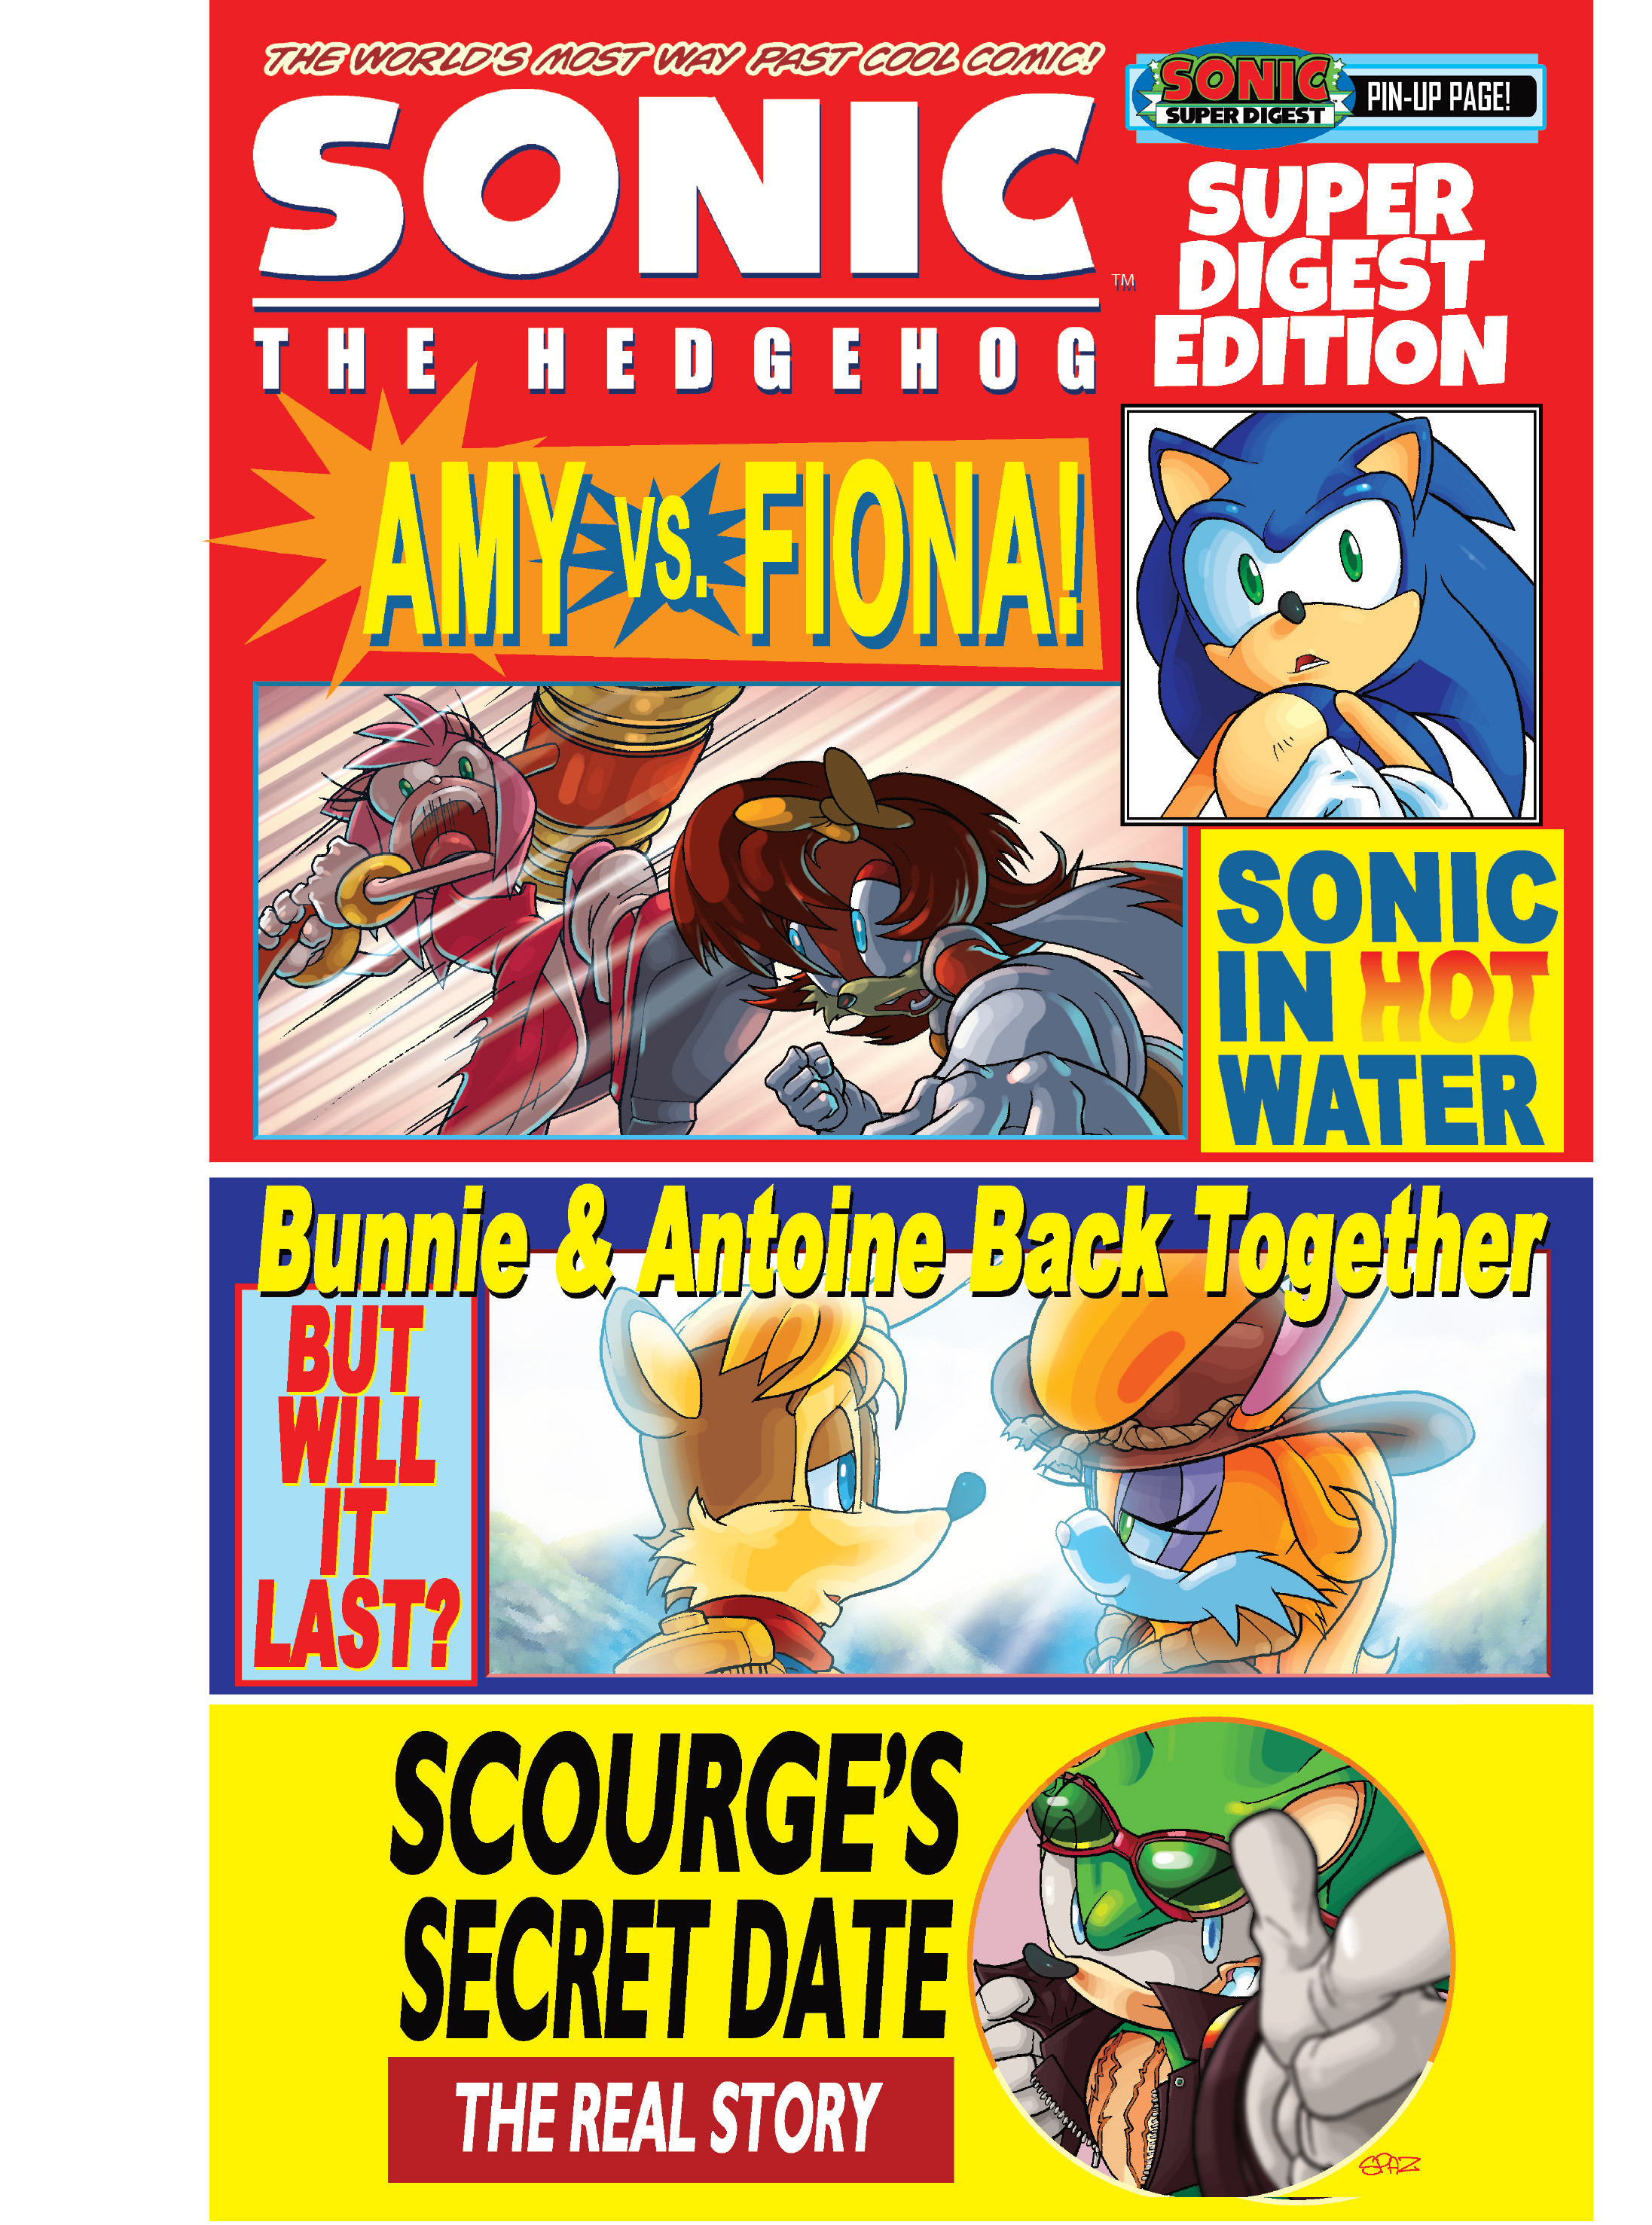 Read online Sonic Super Digest comic -  Issue #7 - 82